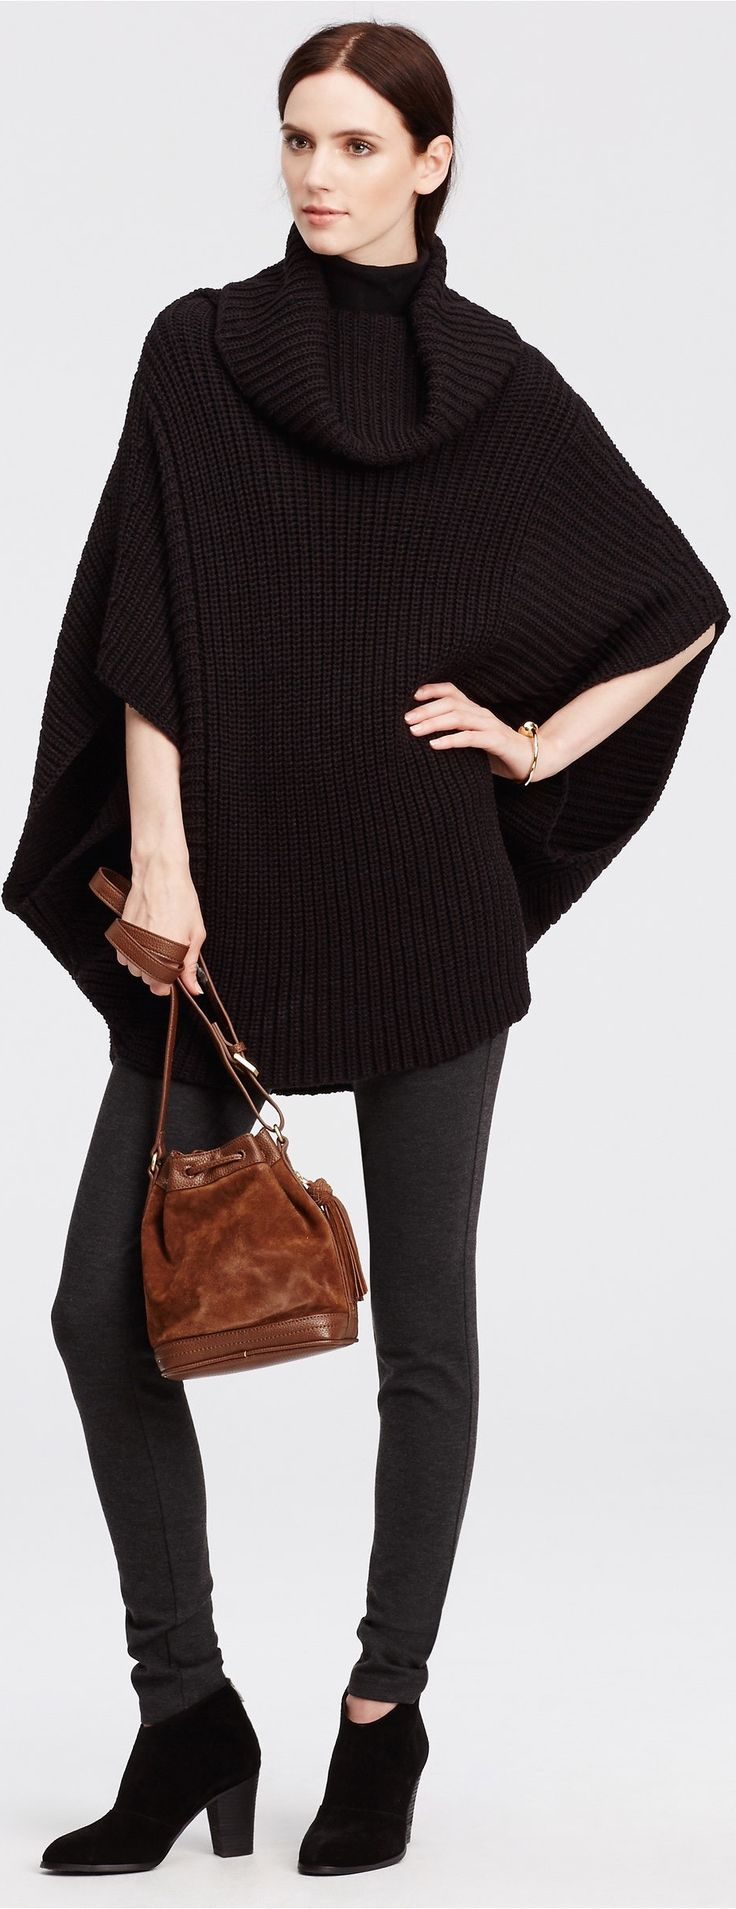 Casual Friday Outfit Ideas: The Never-Goes-Out-Of-Style Black Poncho